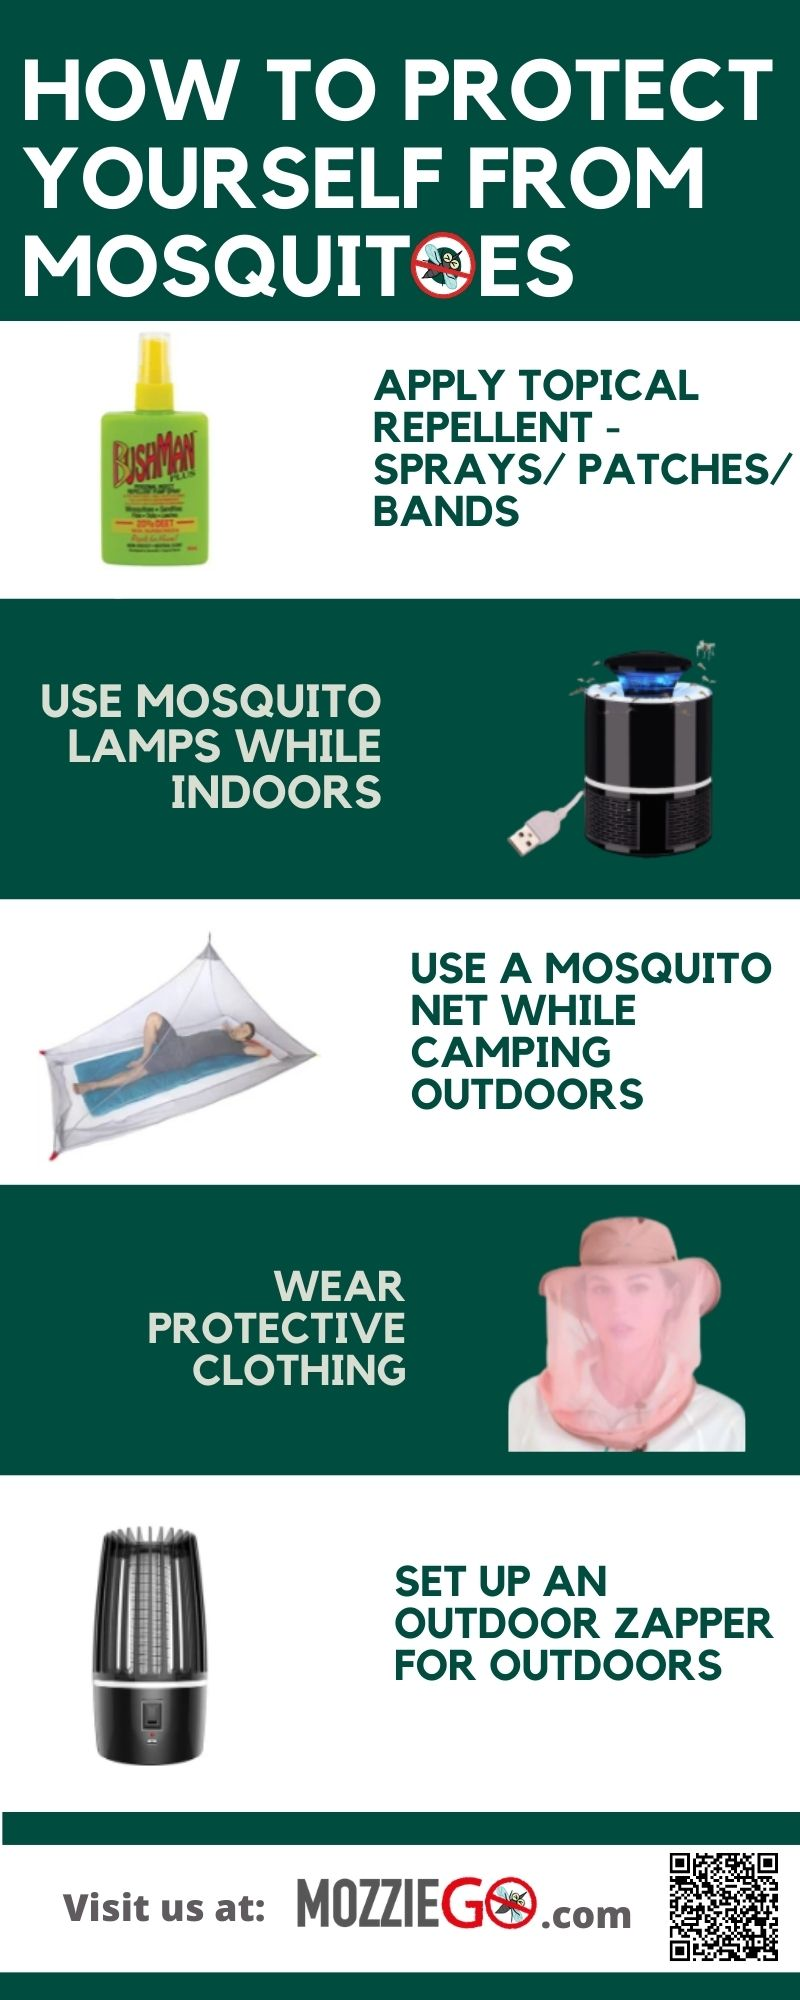 How to protect yourself from mosquitoes